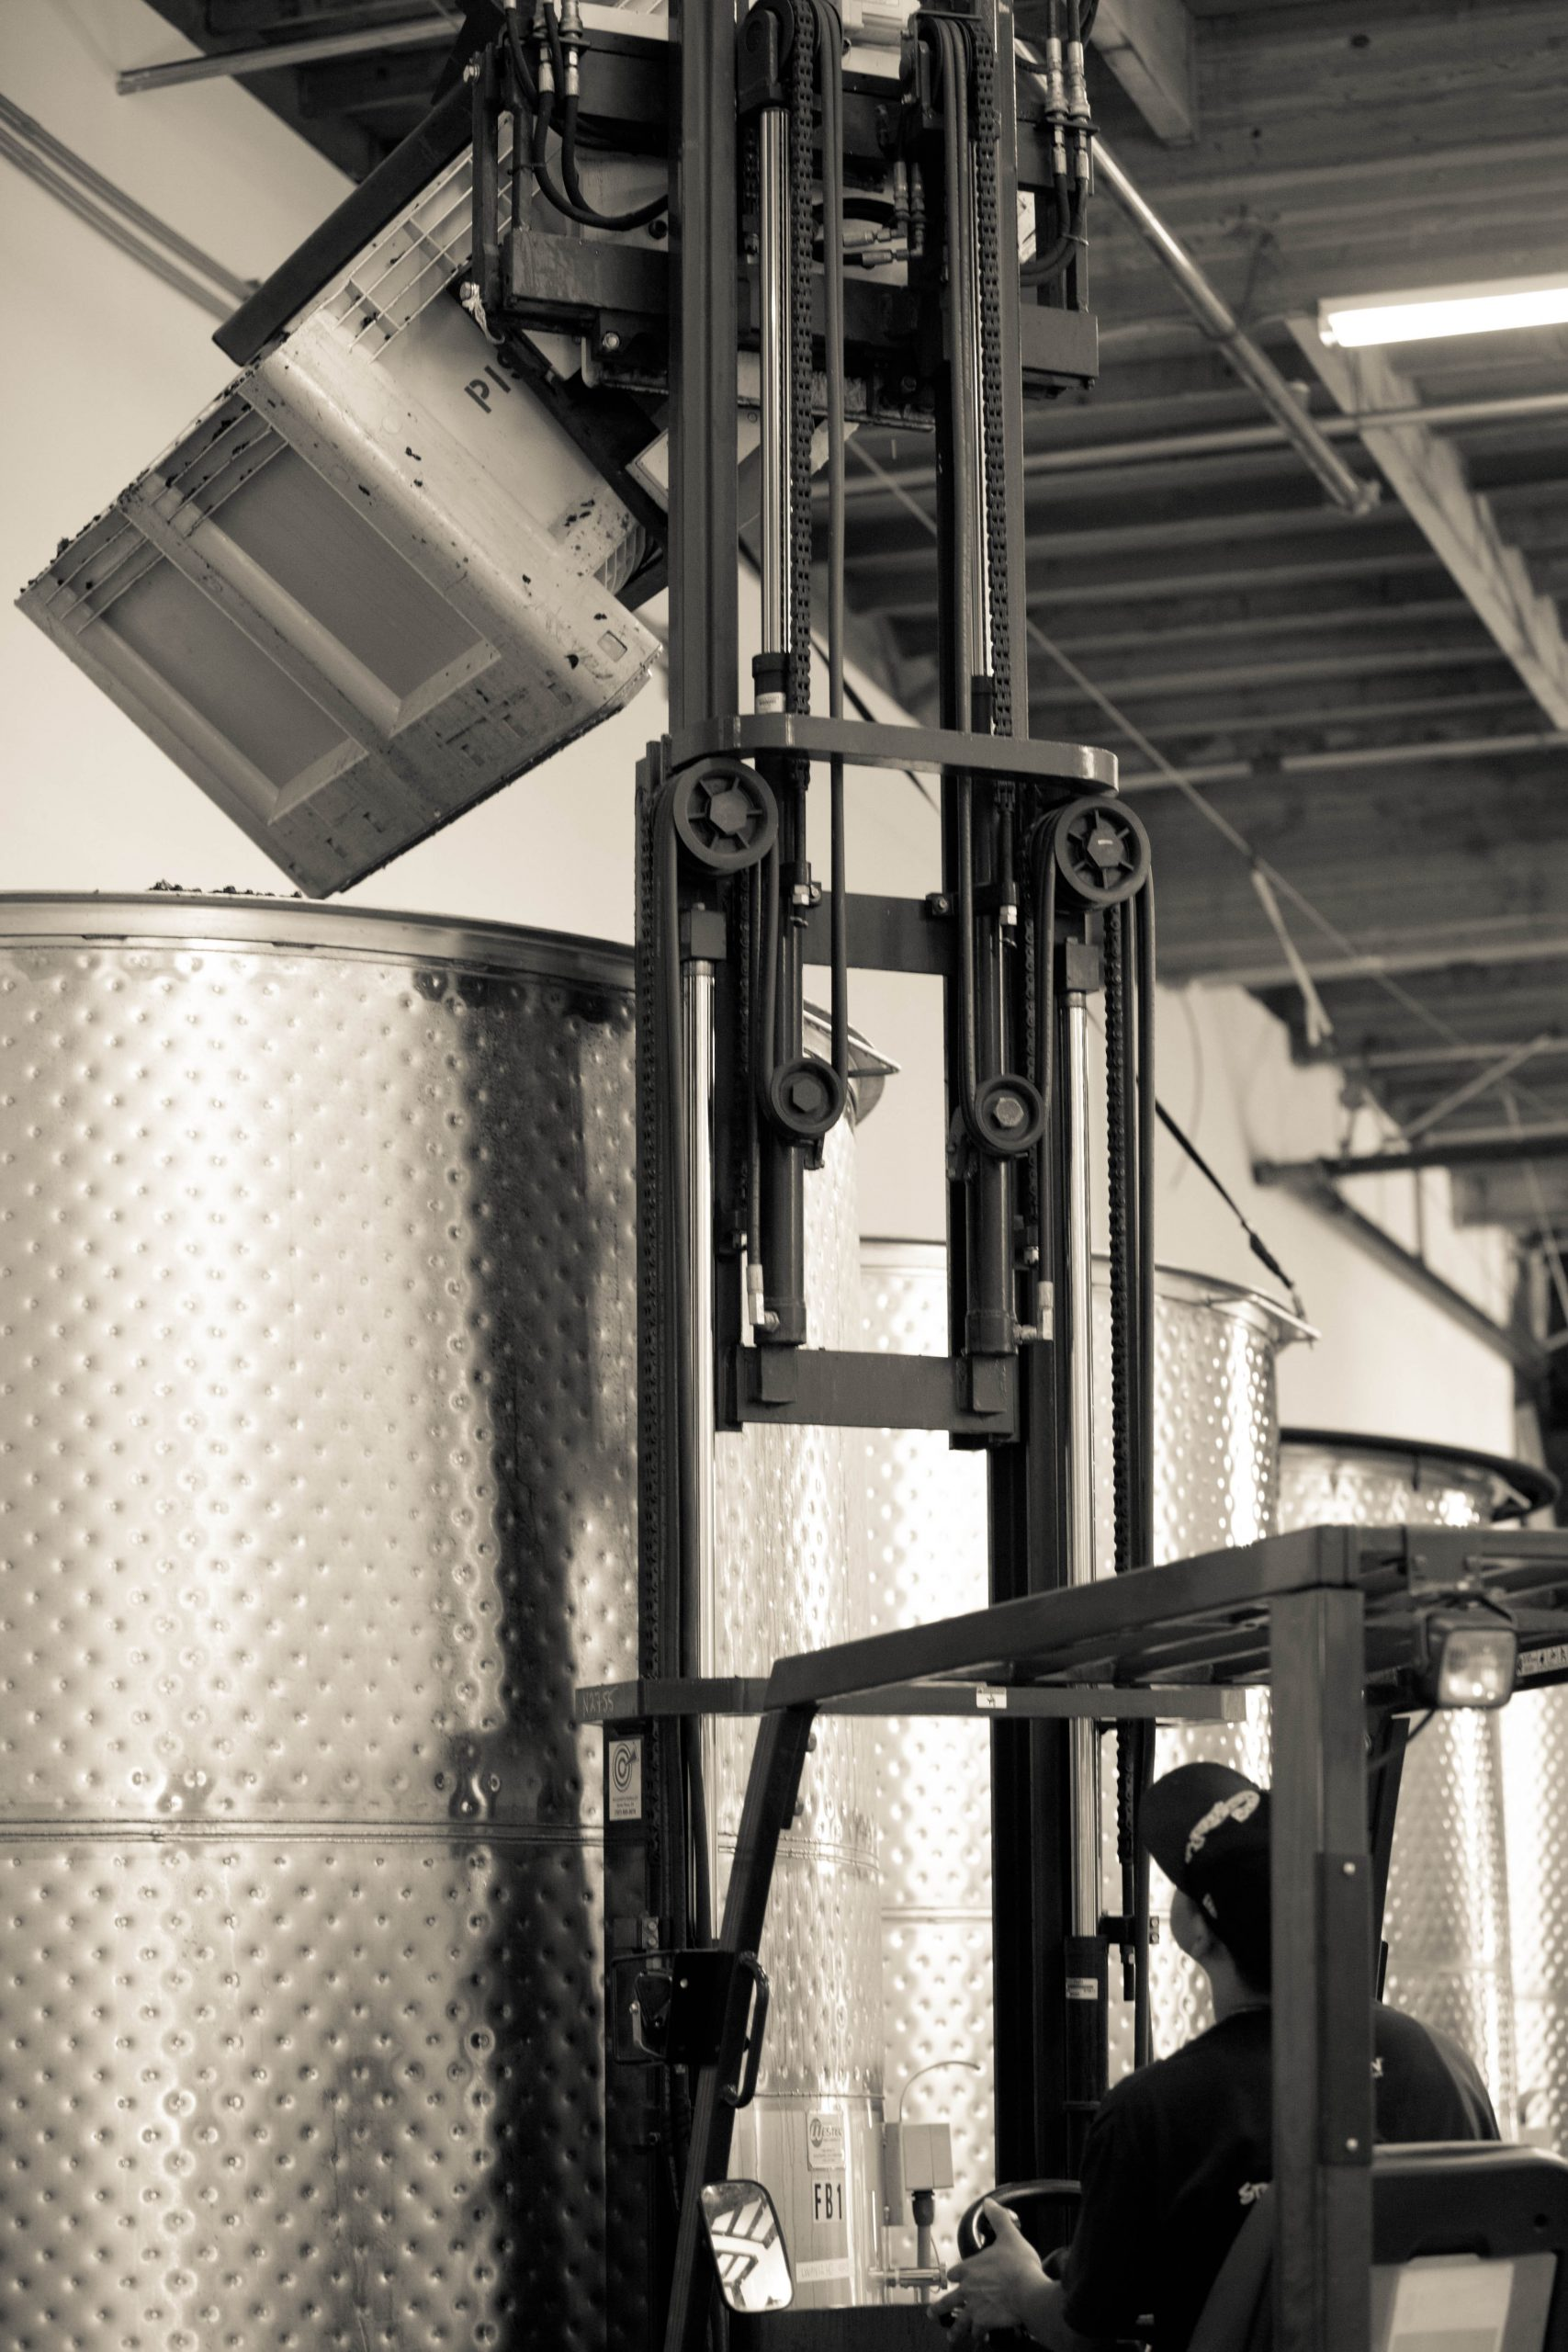 Forklift in winery